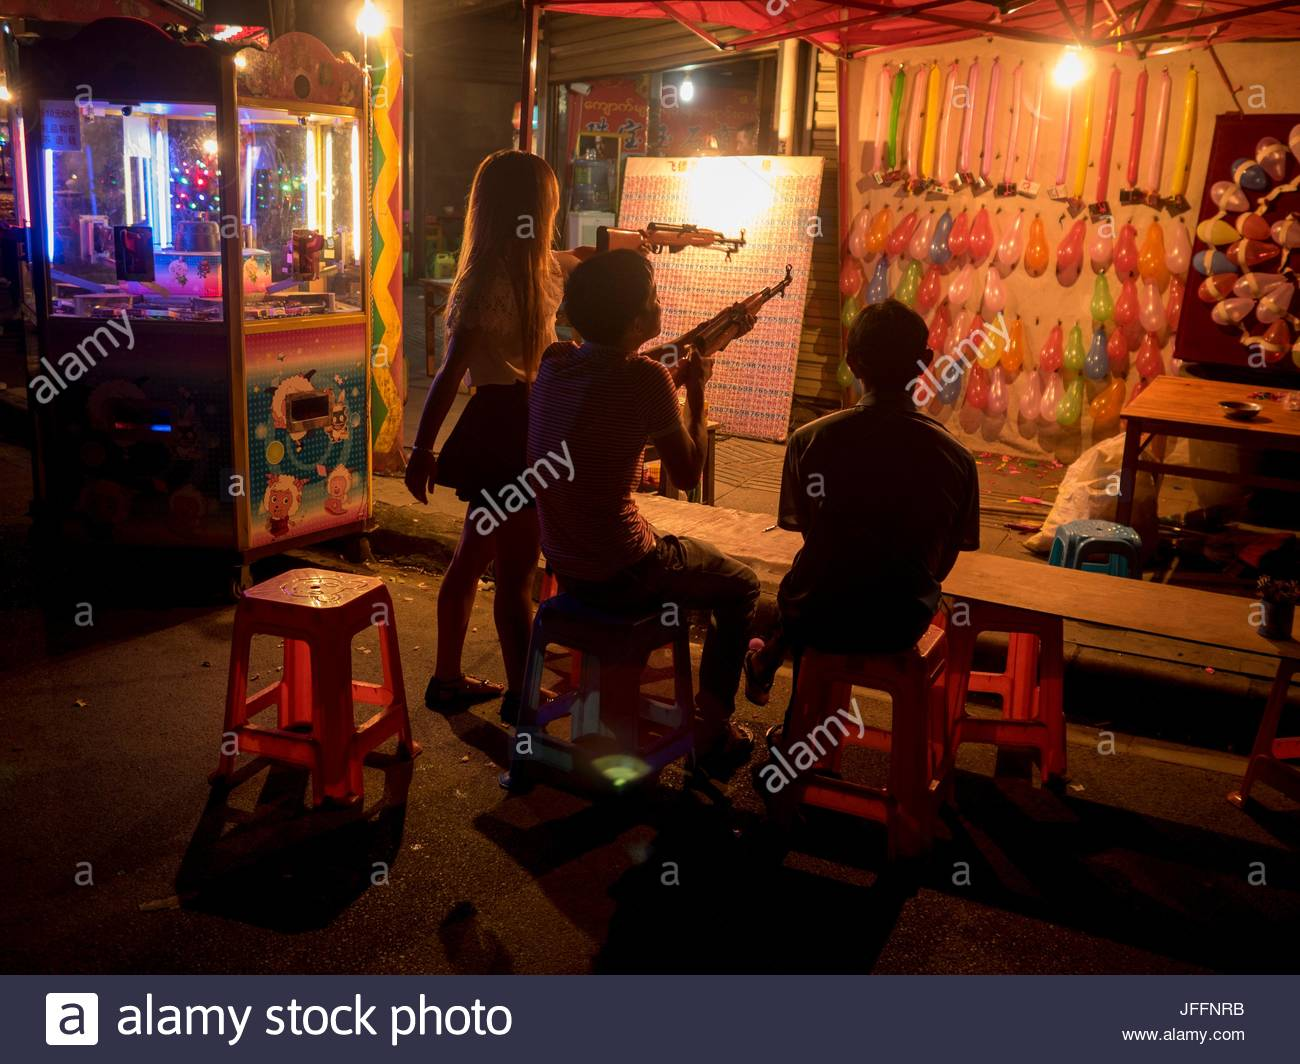 Young people at a fair shooting balloons. - Stock Image